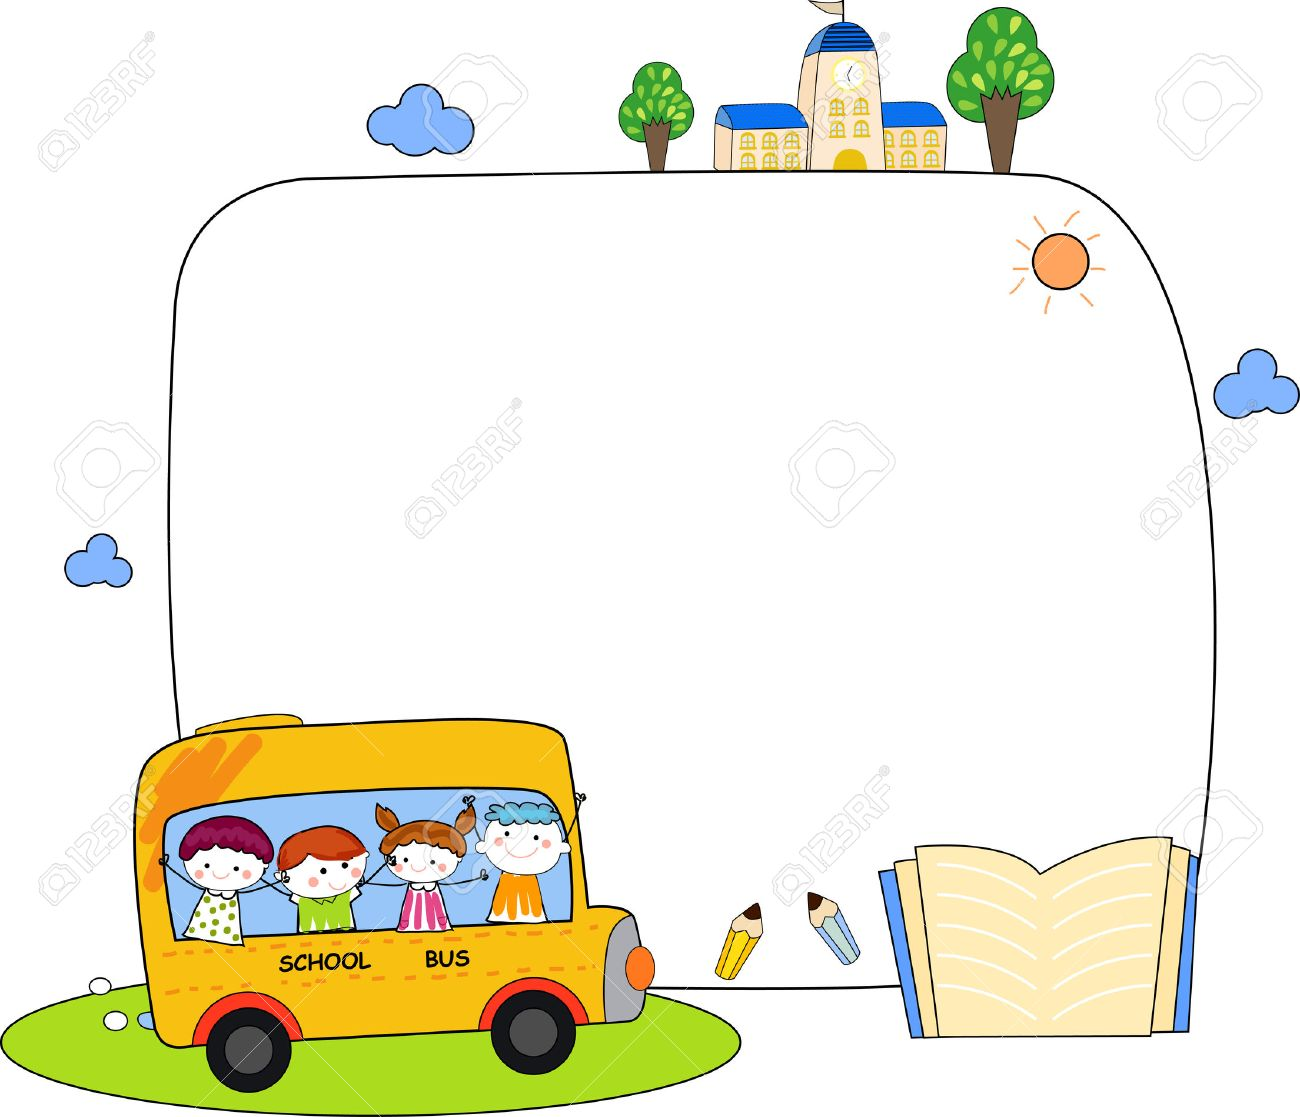 Cute Cartoon Kids And School Bus Frame Royalty Free Cliparts ...